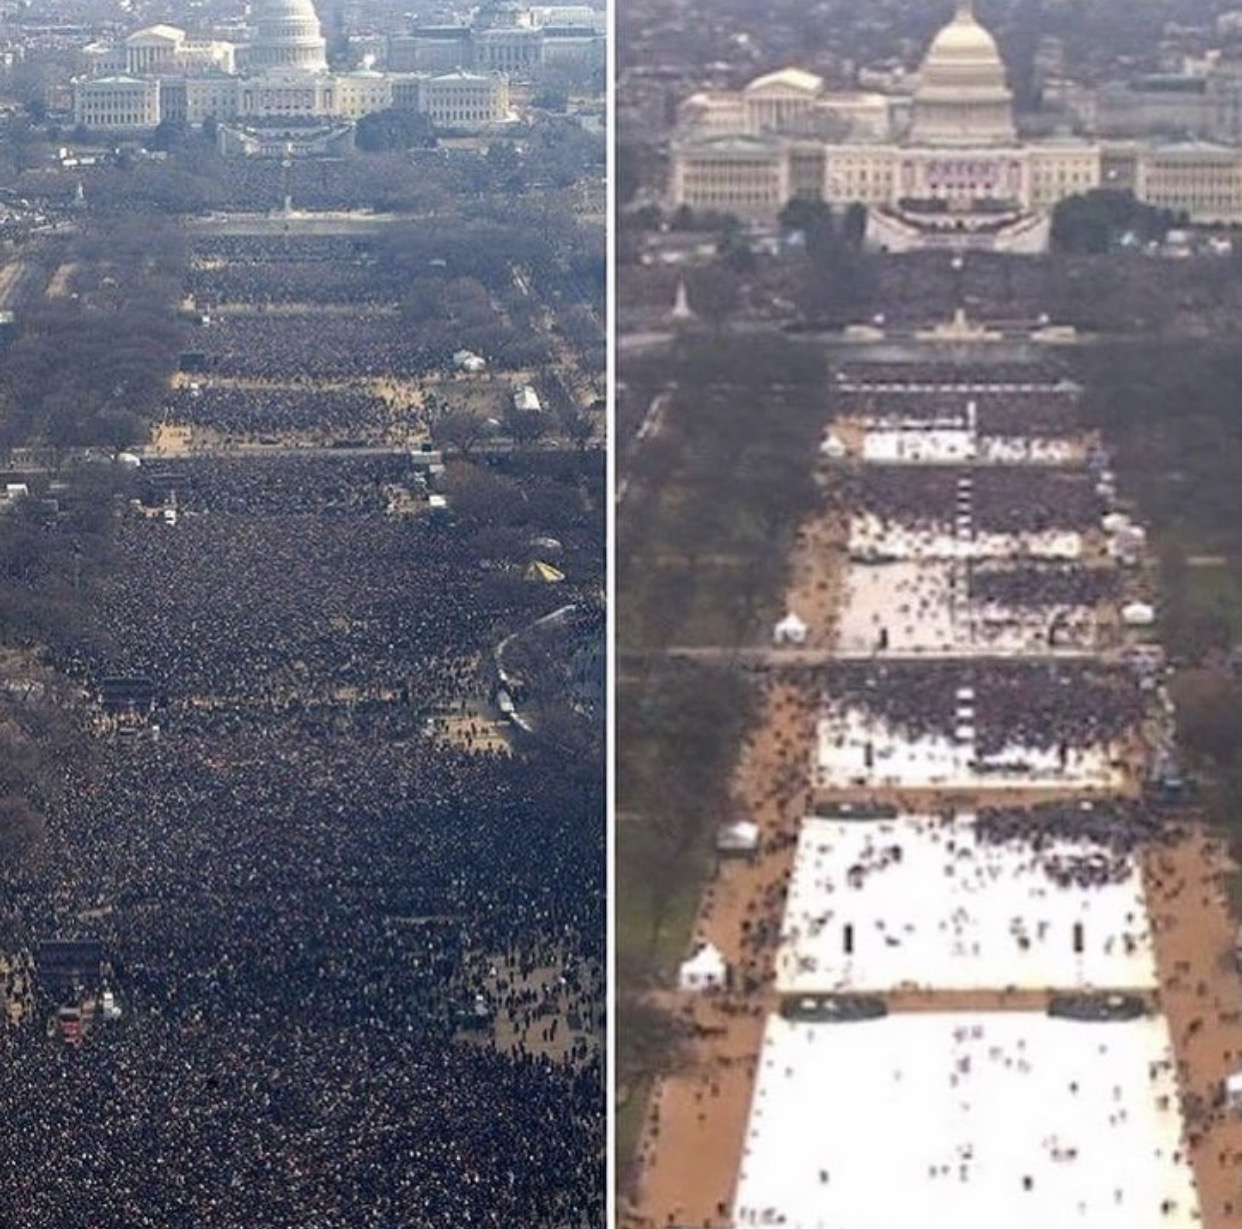 obama & trump inauguration crowds